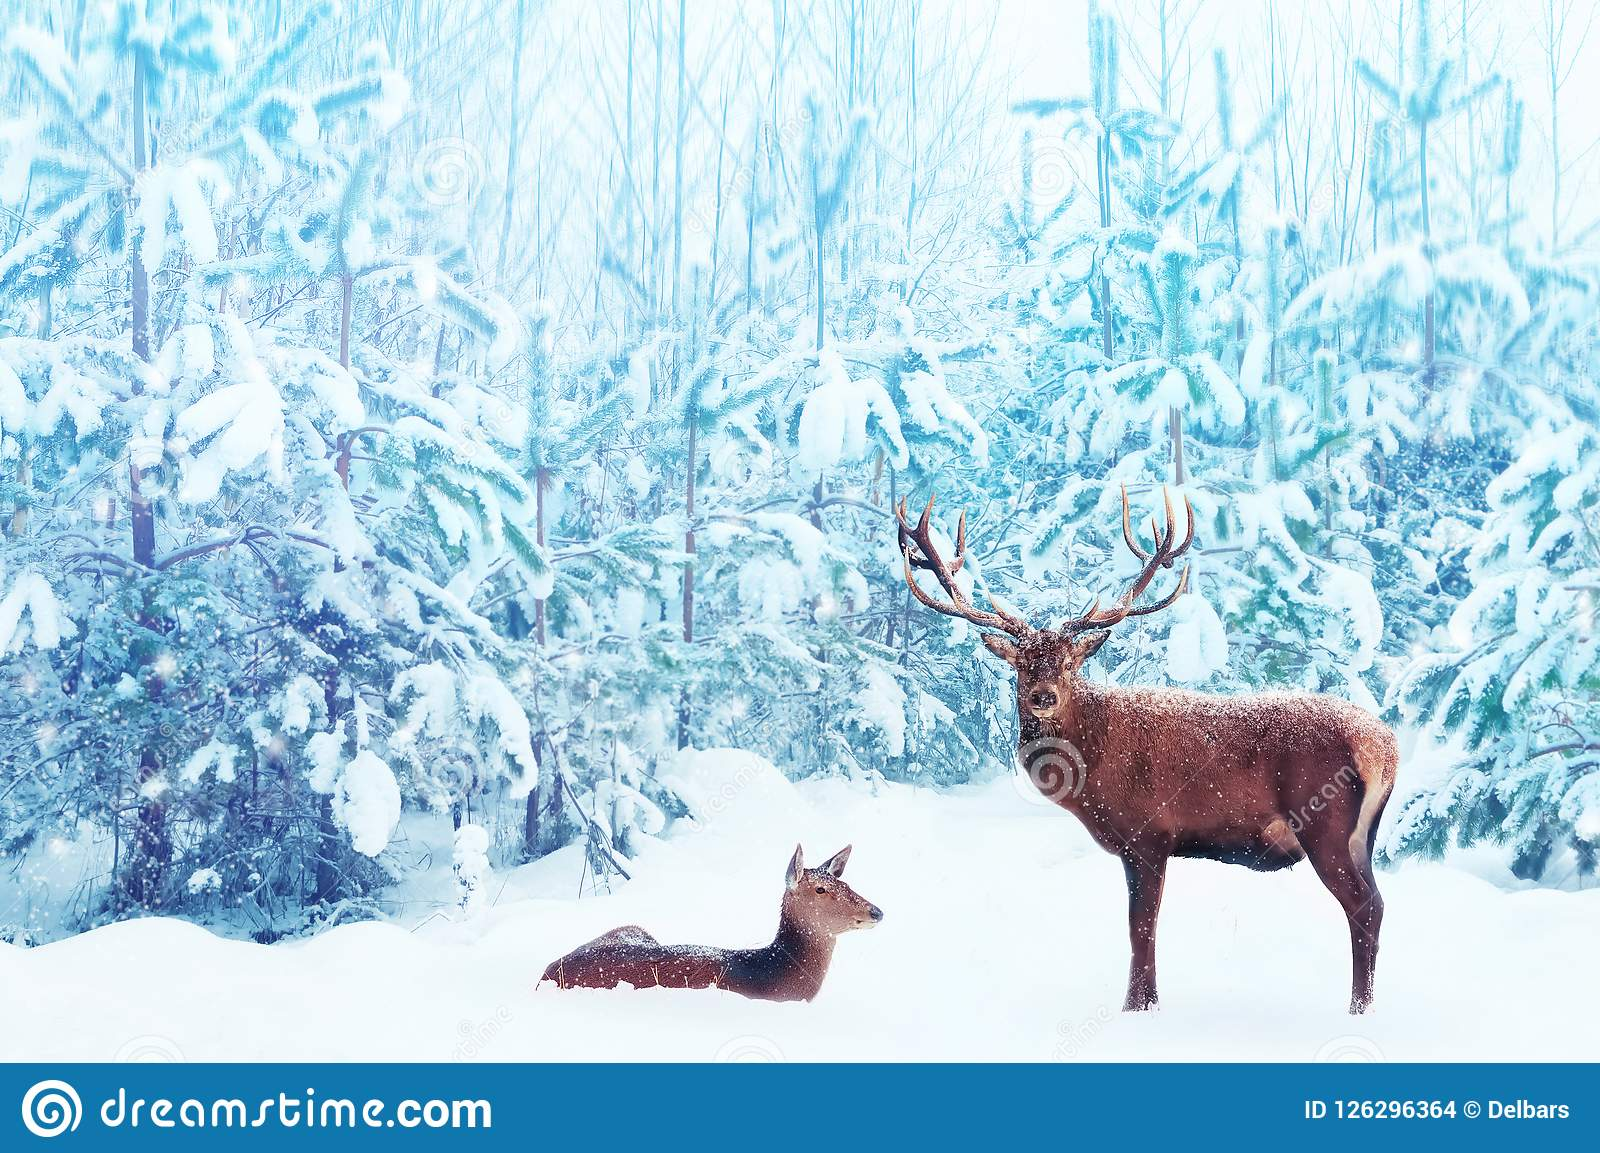 Noble deer male and female in a snowy winter blue forest. Artistic christmas fantasy image in blue and white color